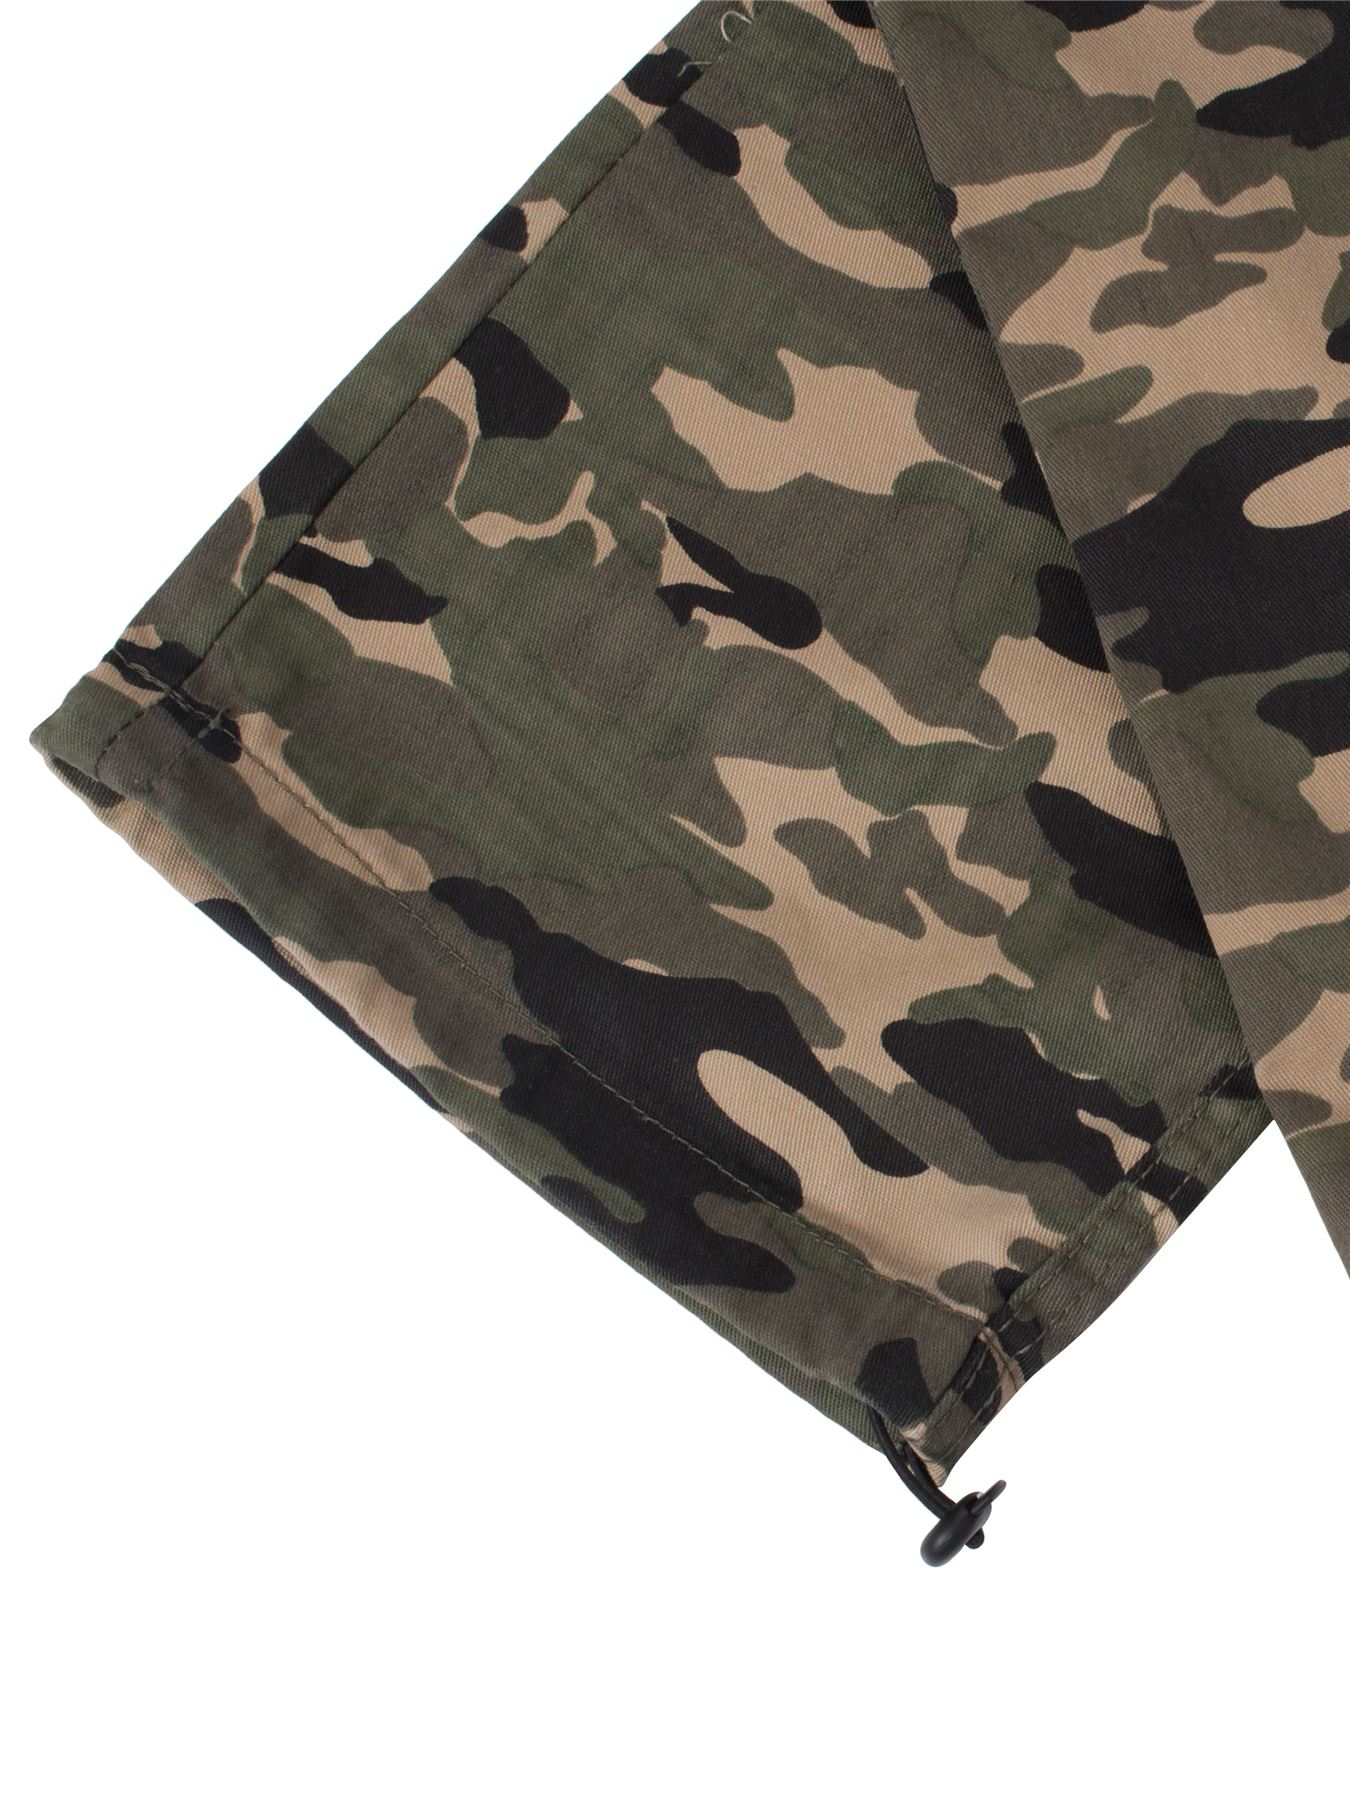 Kruze-Mens-Military-Combat-Trousers-Camouflage-Cargo-Camo-Army-Casual-Work-Pants thumbnail 22